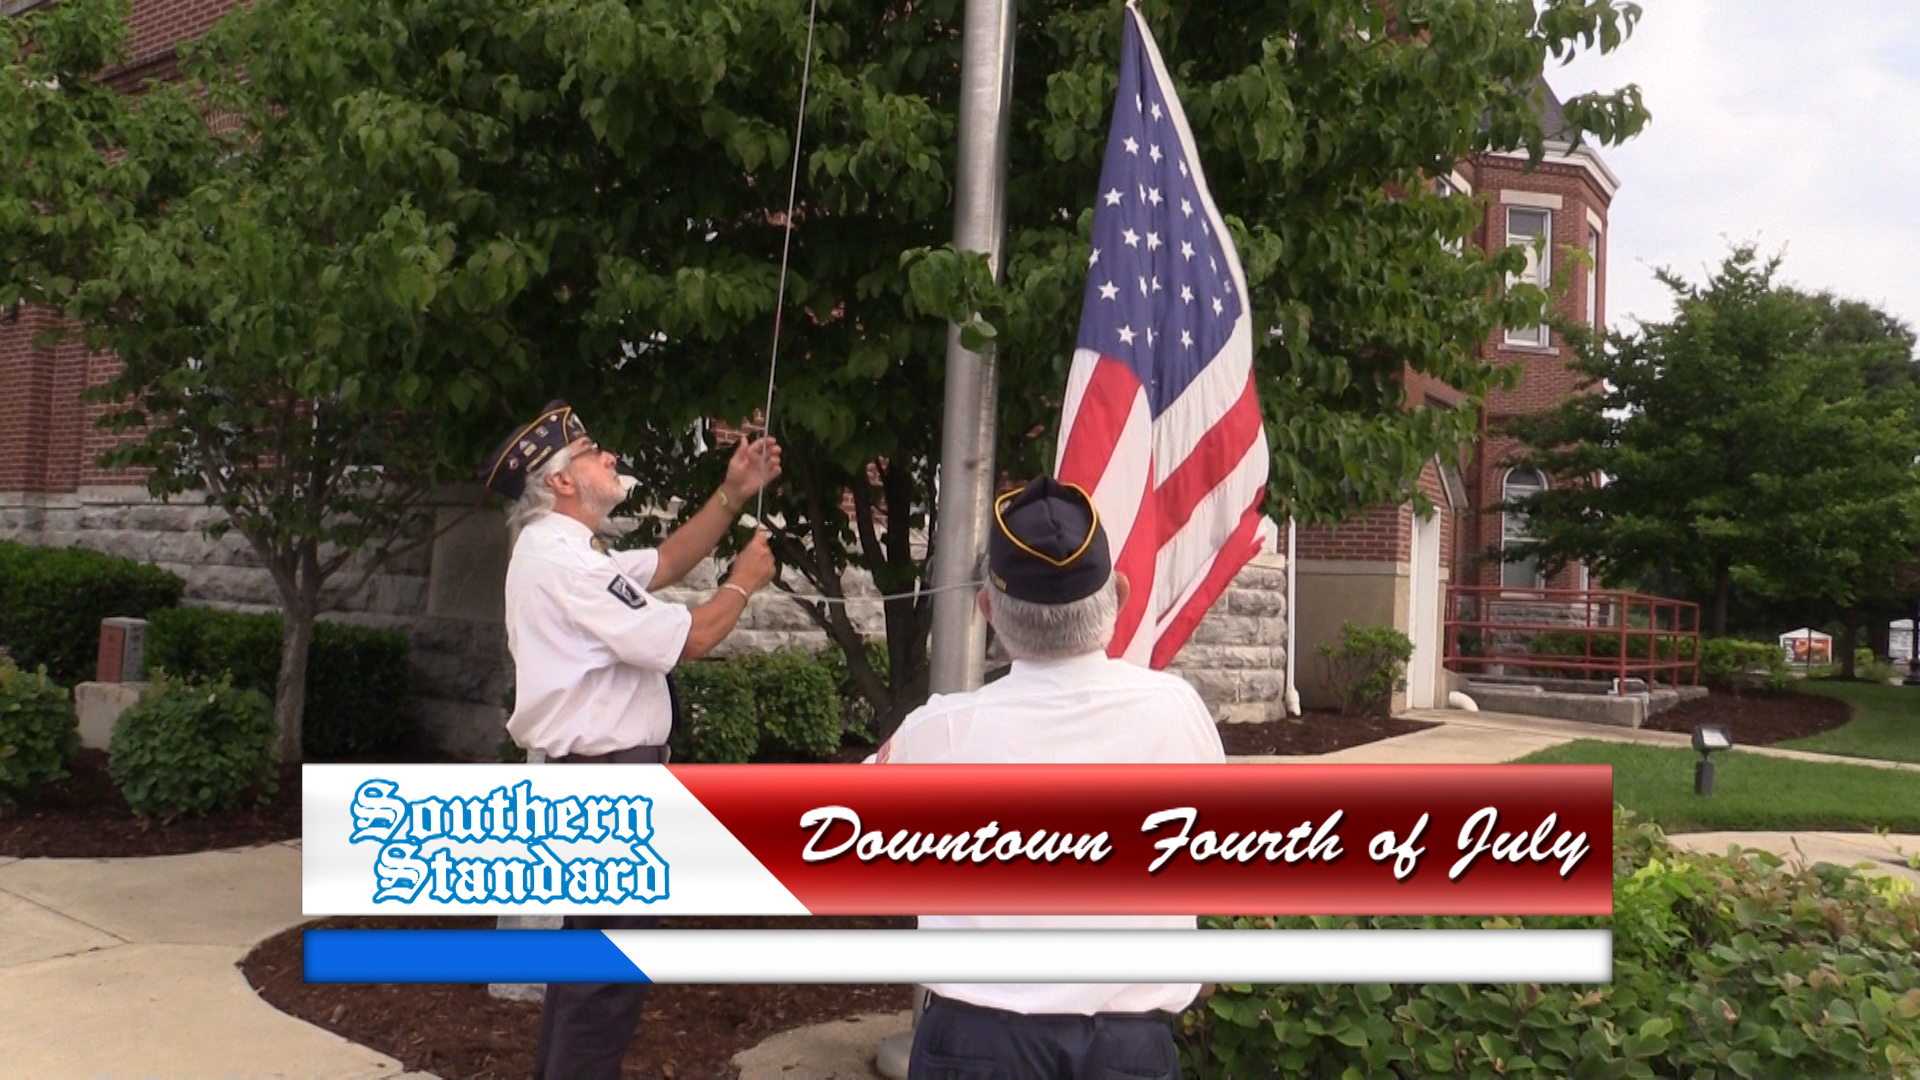 VIDEO: McMinnville 4th of July Celebration